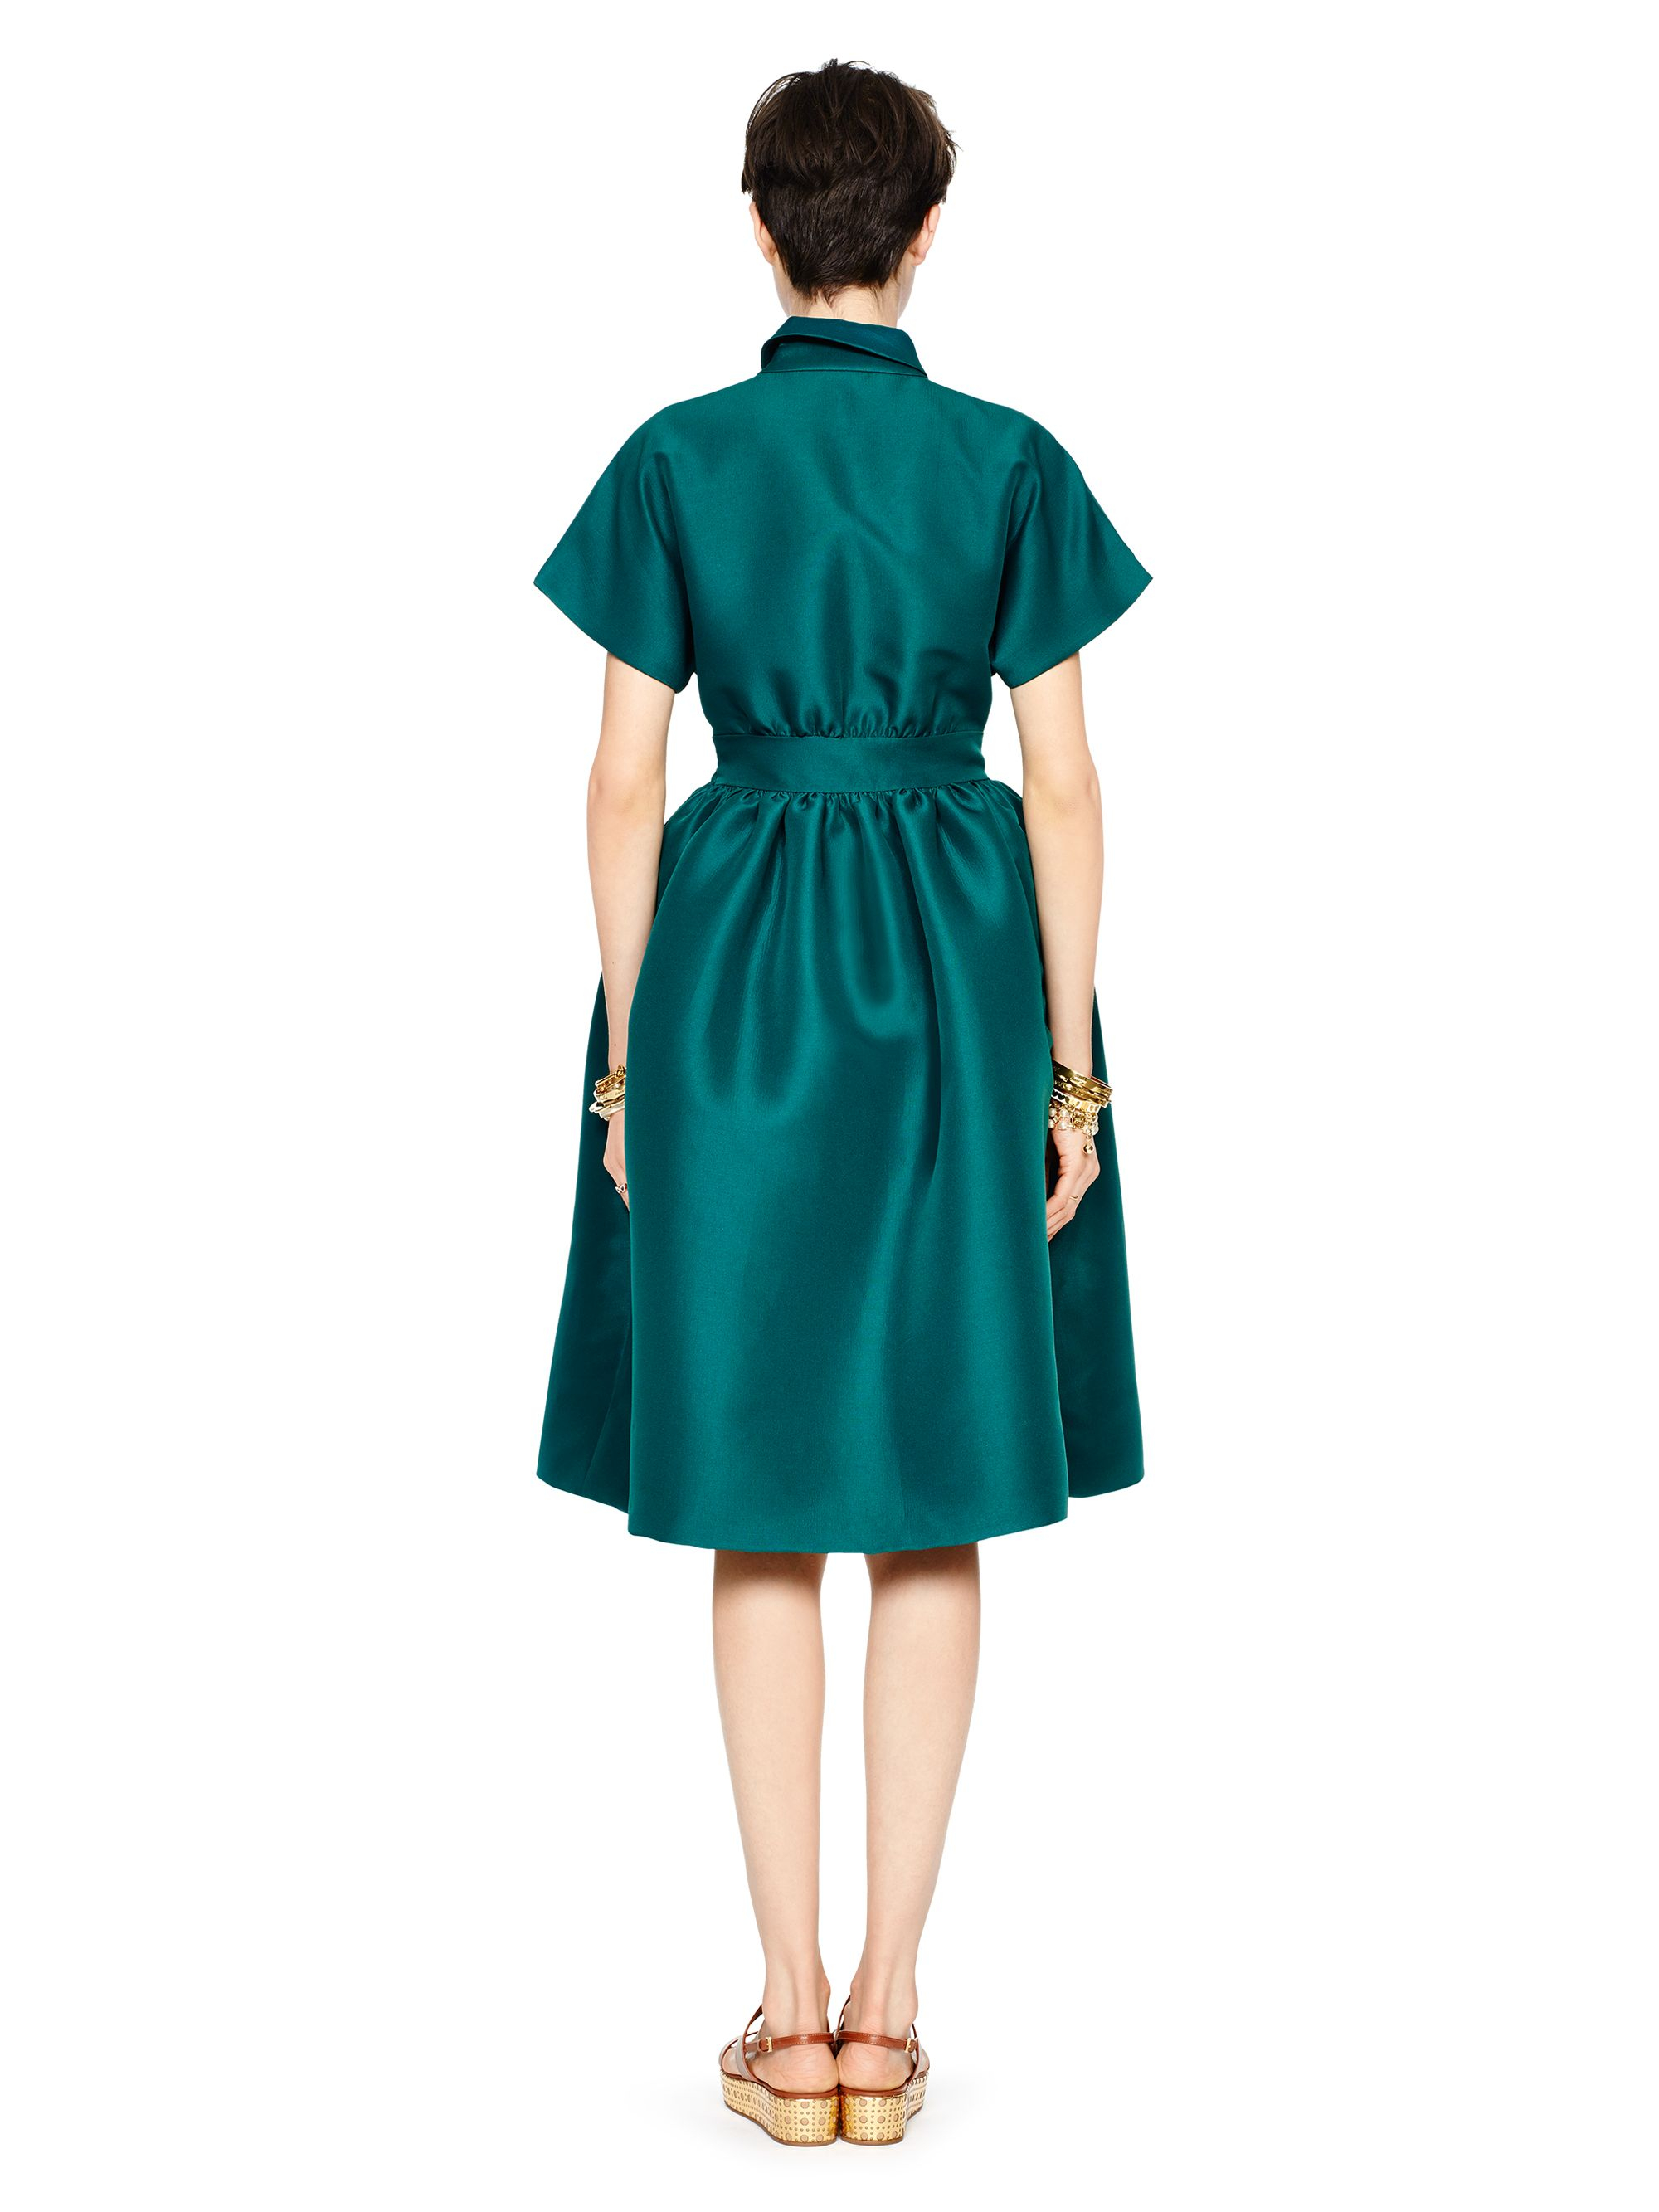 Lyst - Kate Spade New York Rudin Dress in Green